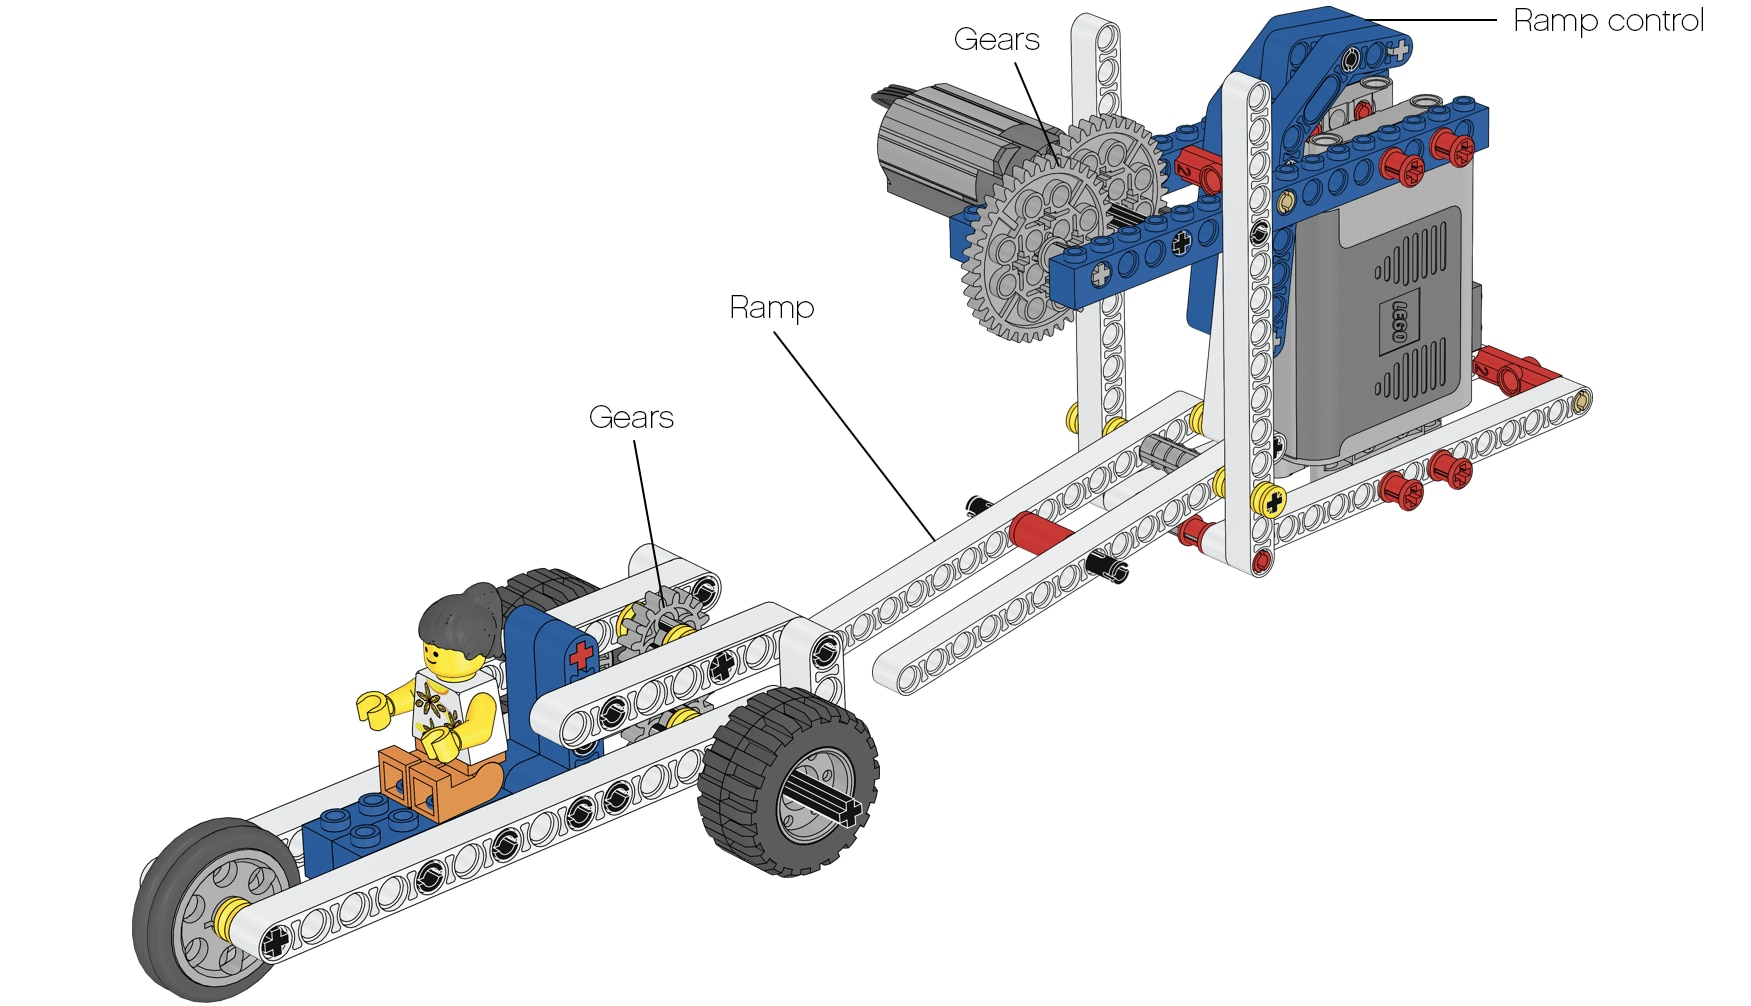 Dragster - Simple & Powered Machines - Lesson Plans - LEGO Education